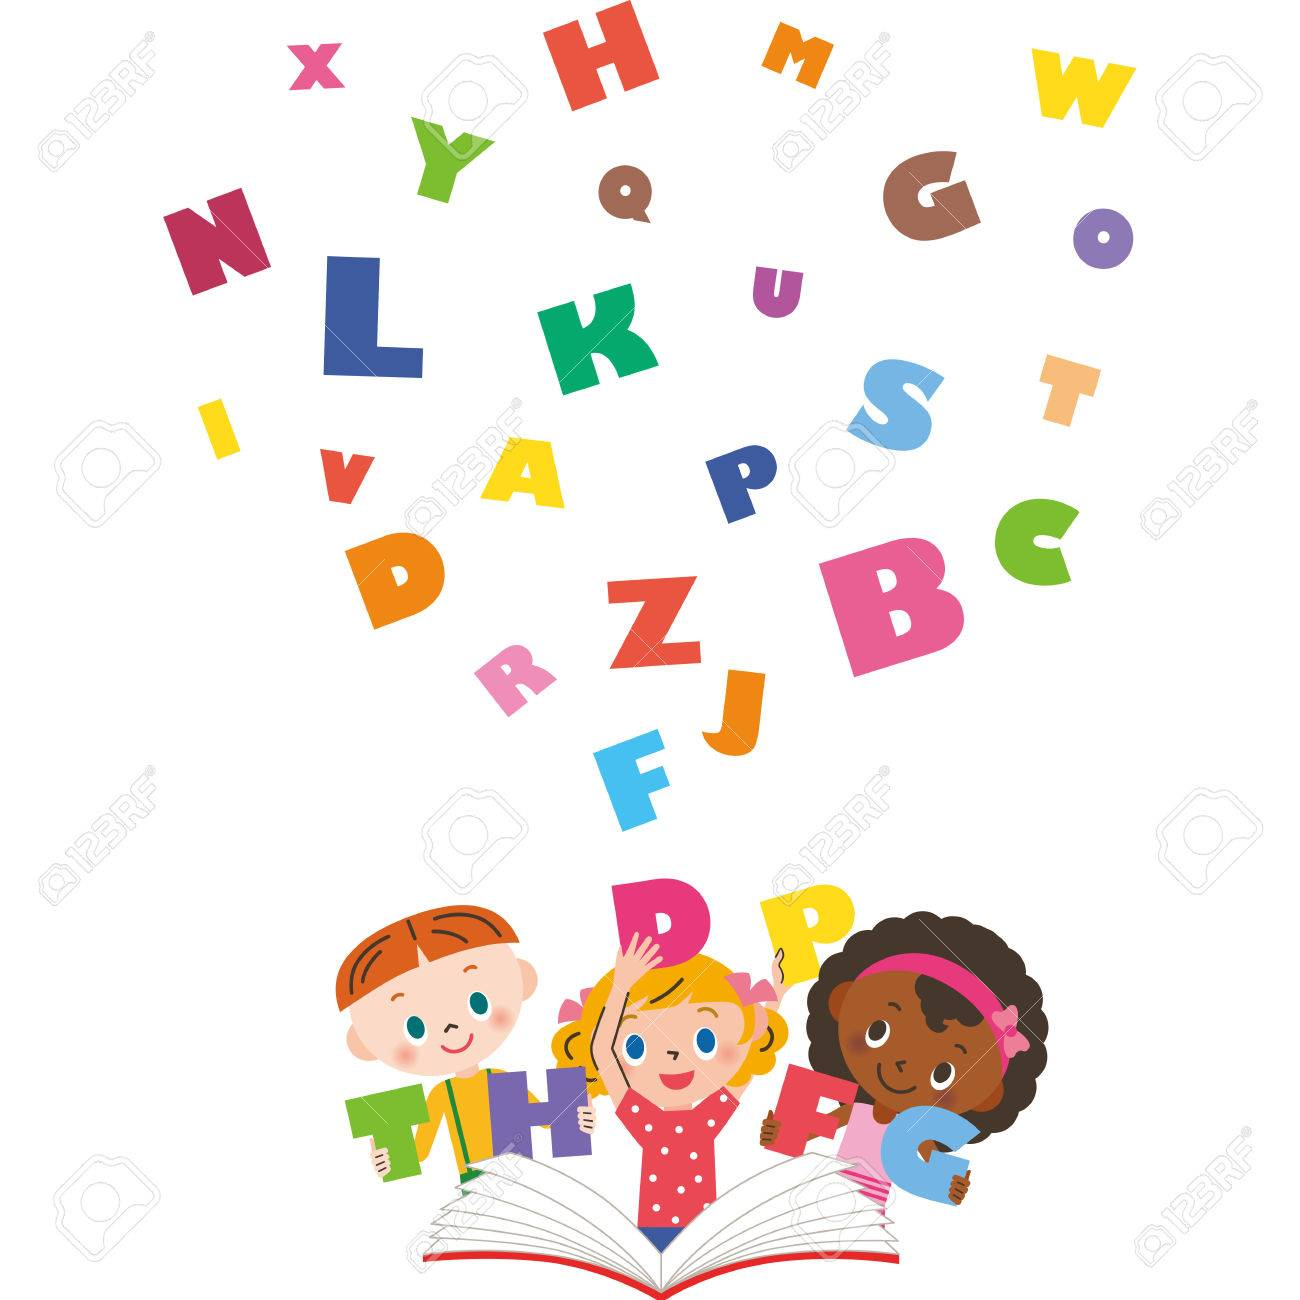 Children learning English.